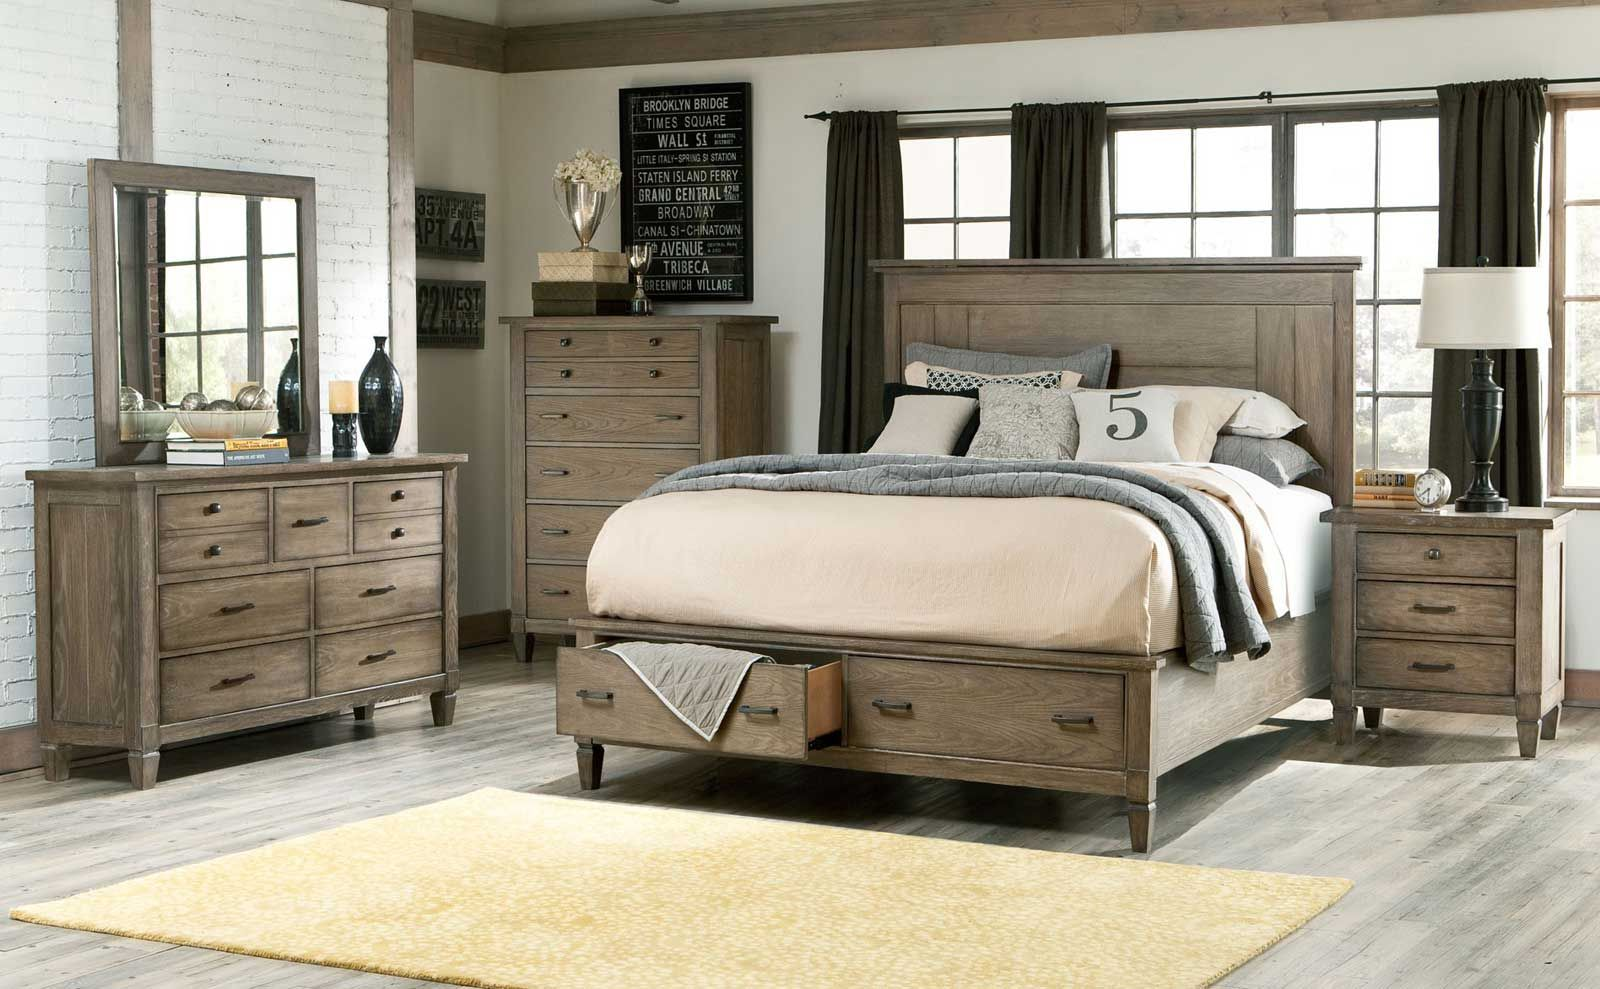 King Bedroom Sets best 25+ king bedroom furniture sets ideas on pinterest | king